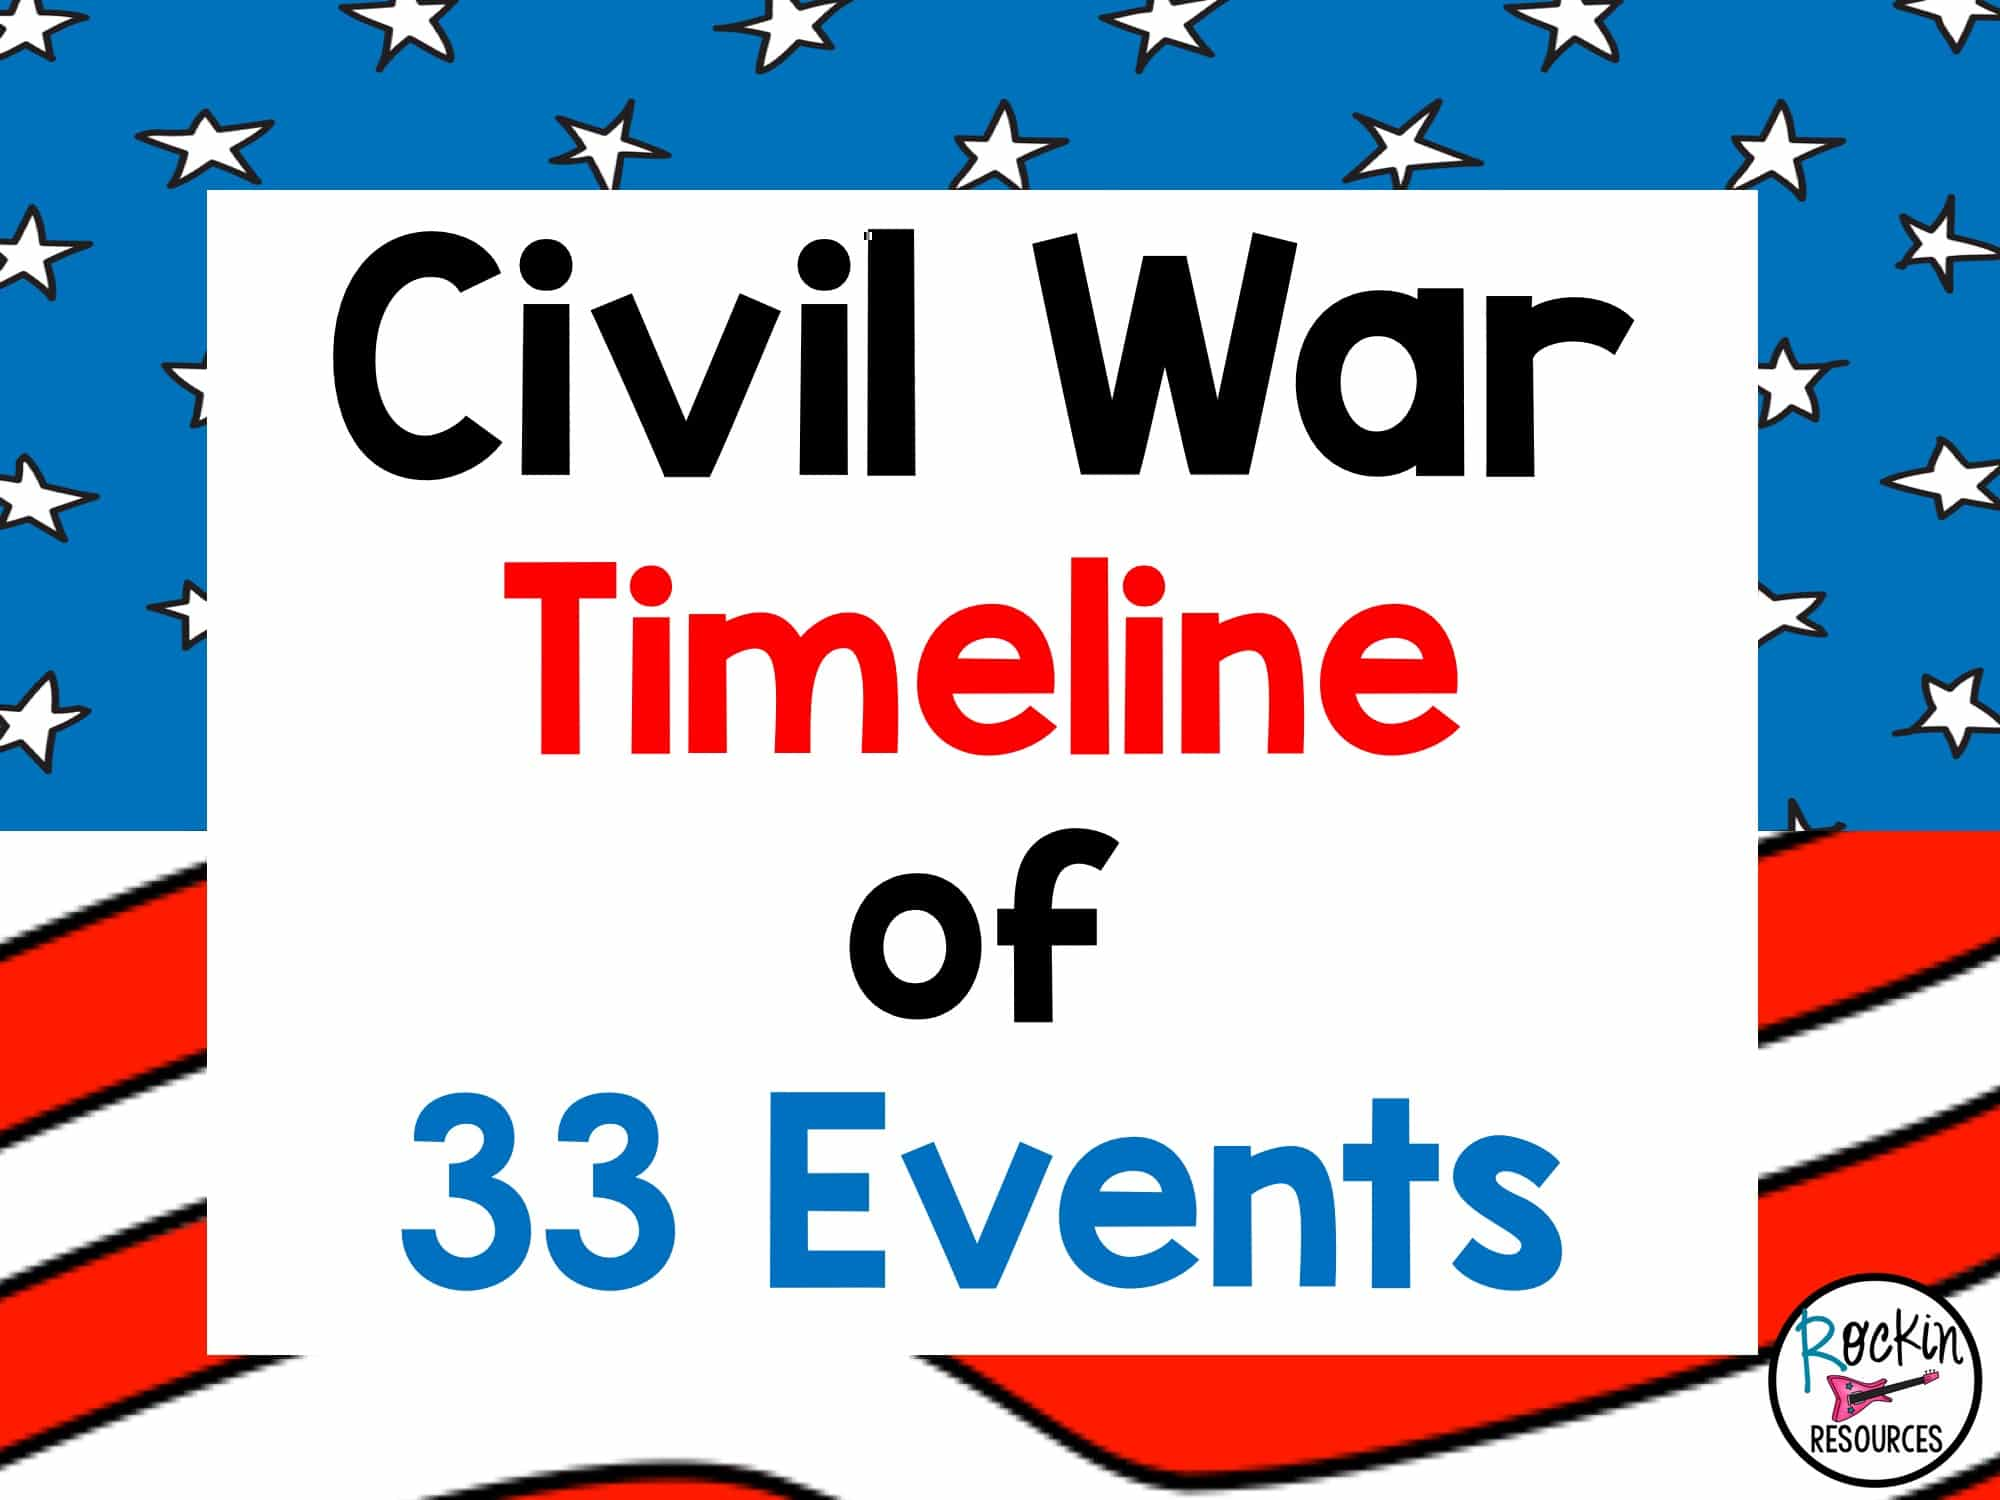 hight resolution of Civil War Timeline   Rockin Resources